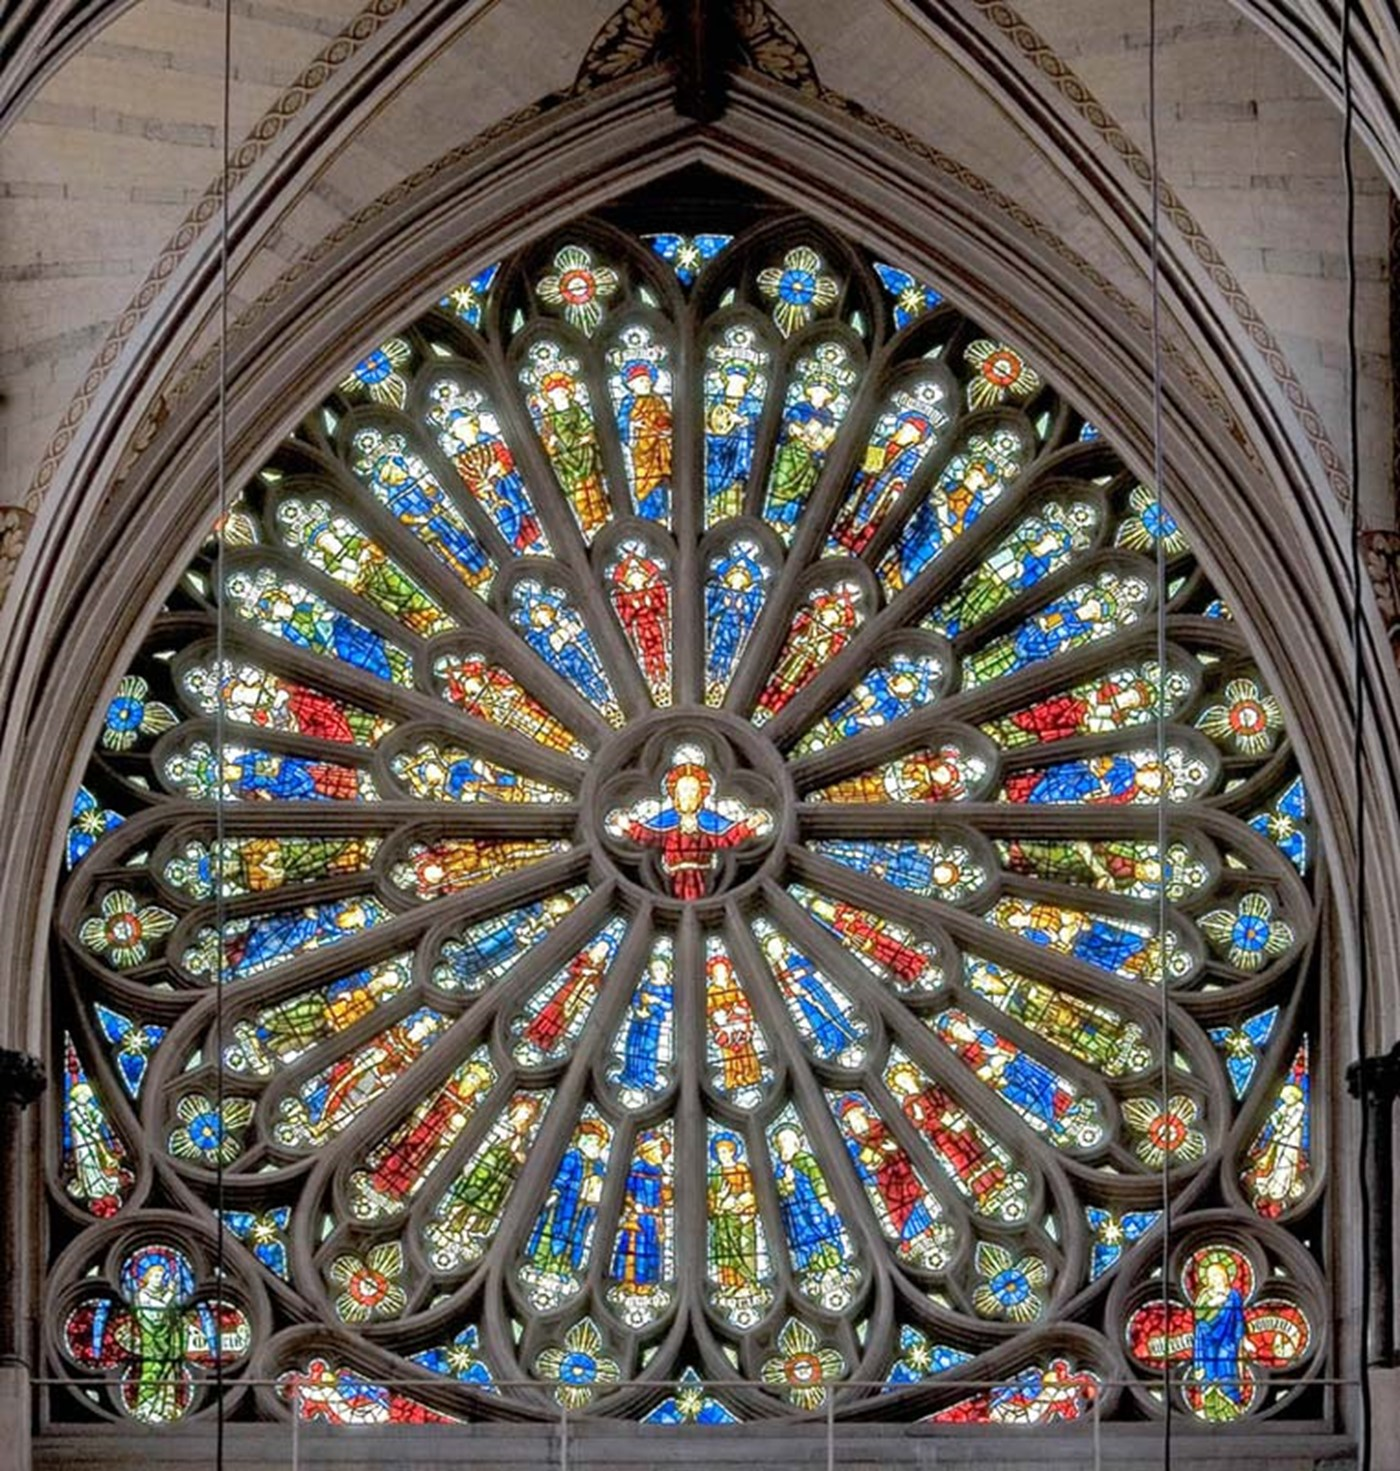 South rose window Westminster Abbey copyright photo.jpg